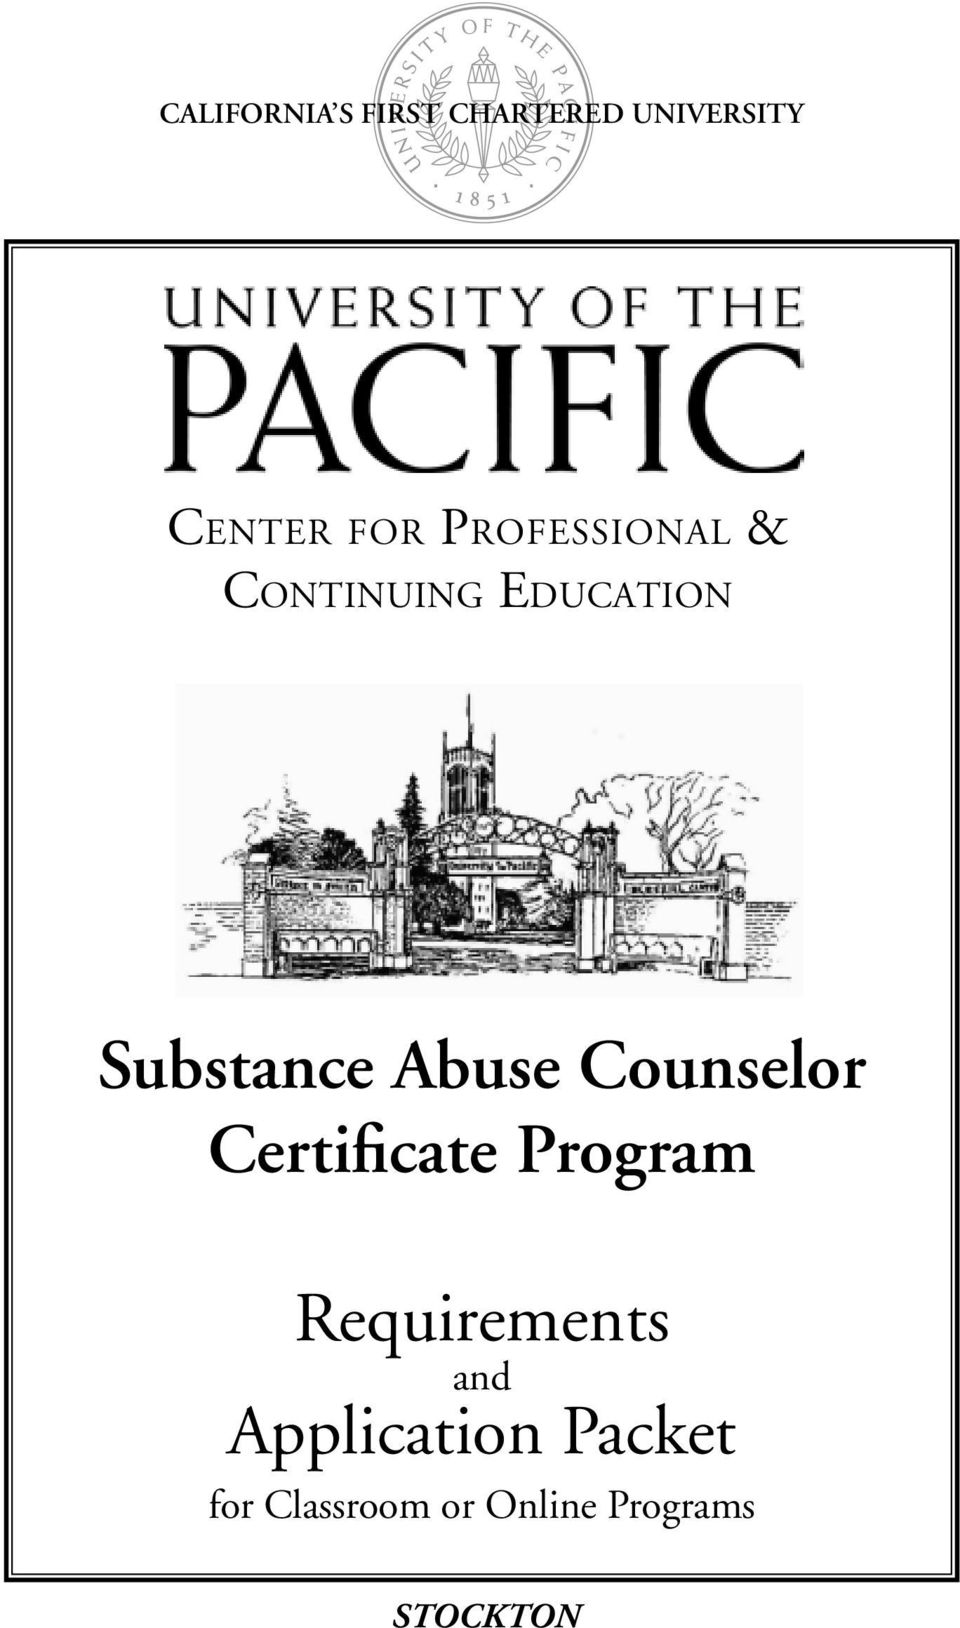 Abuse Counselor Certificate Program Requirements and